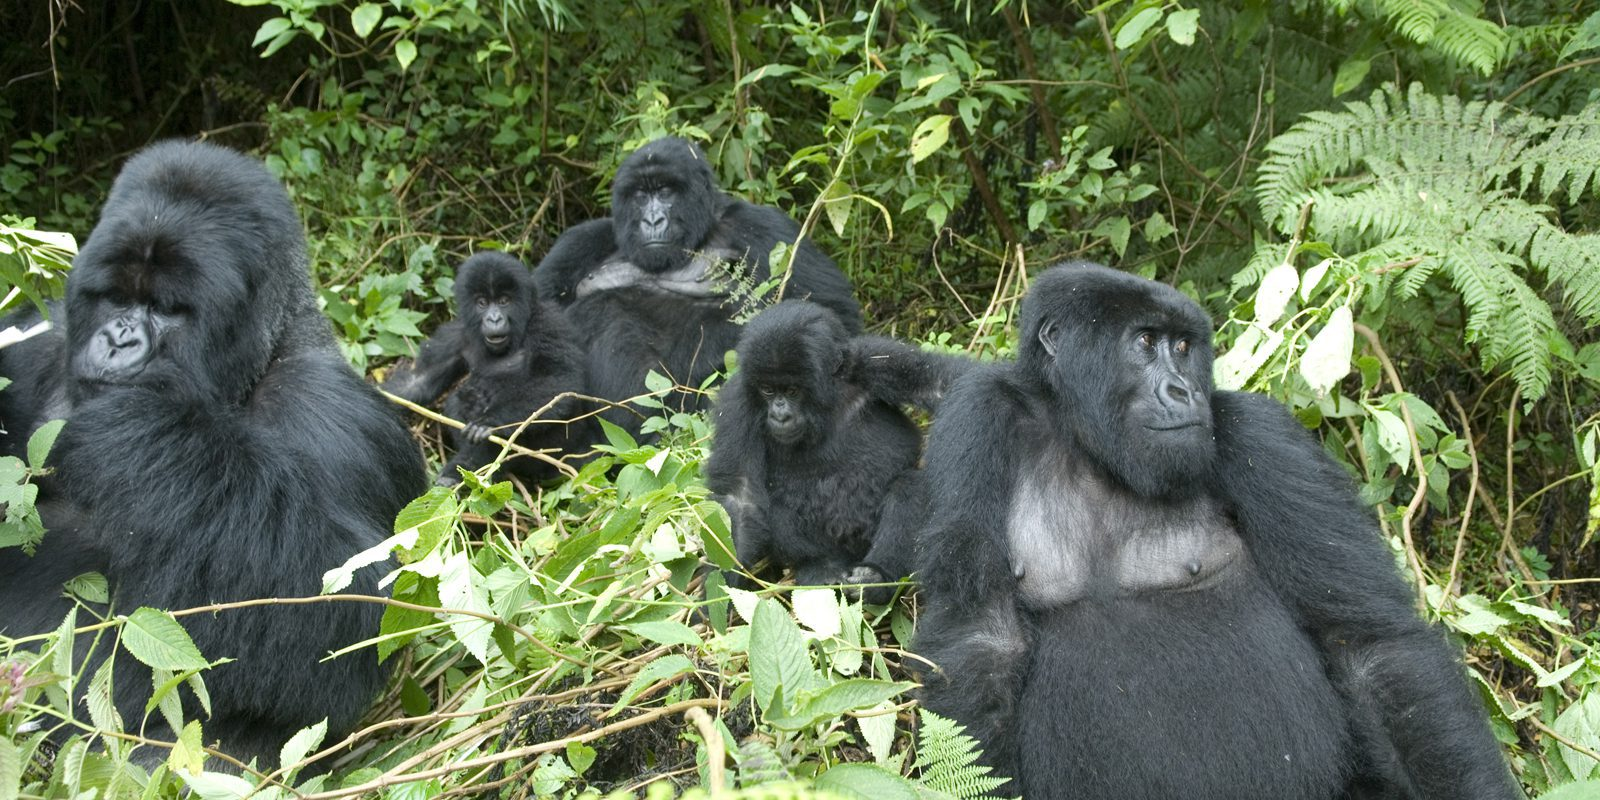 group of gorillas sitting in bushes